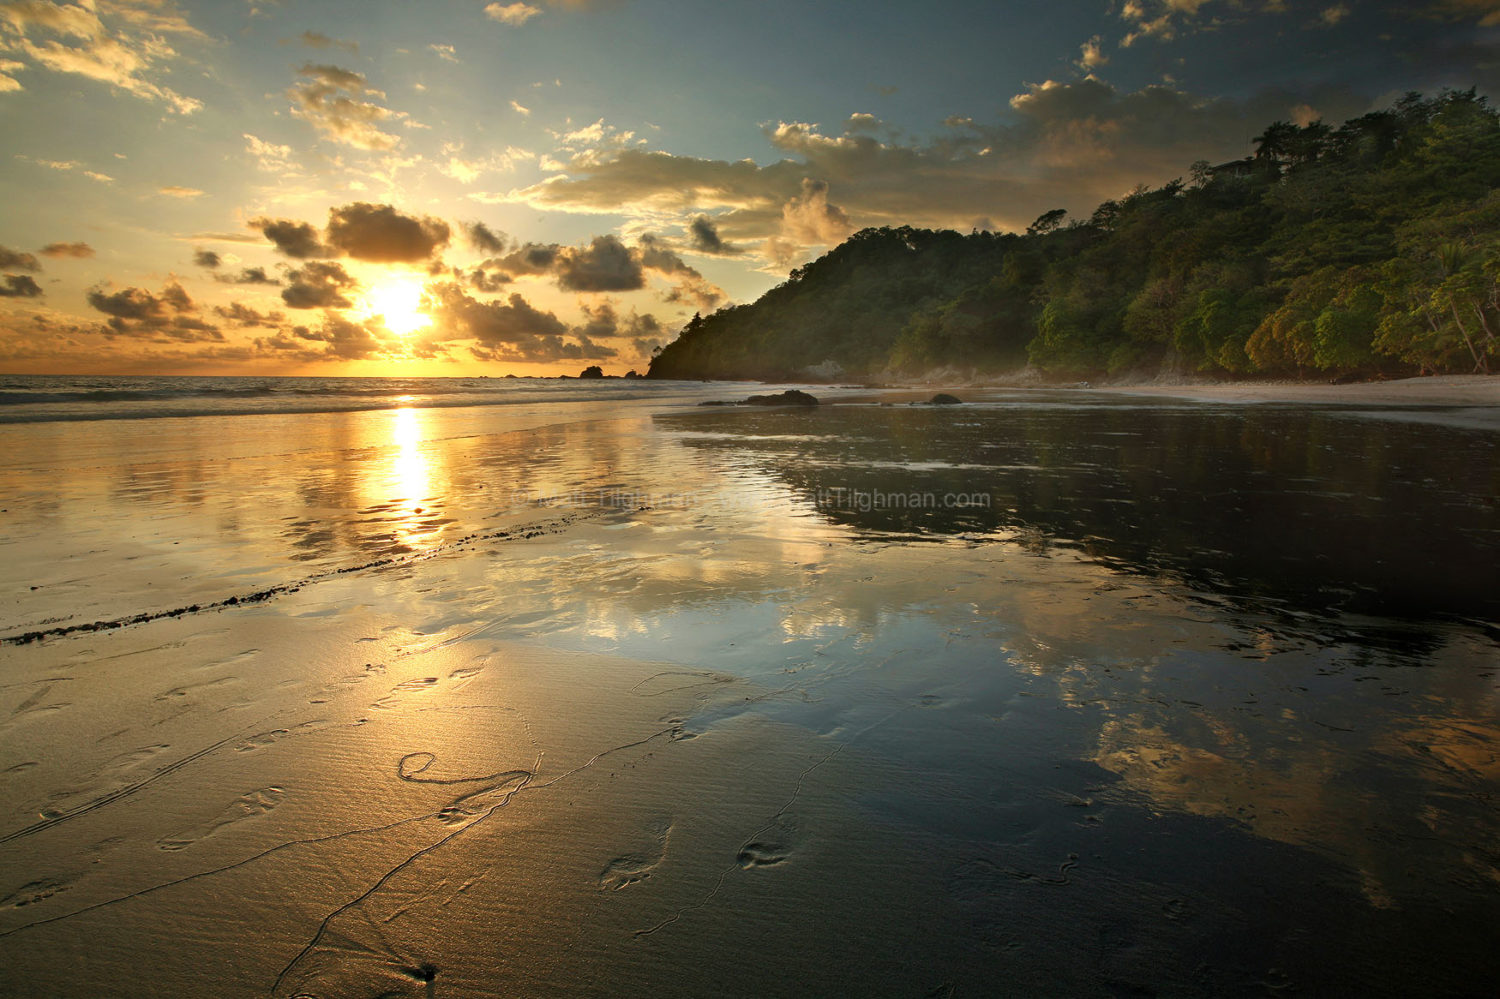 Fine art stock photograph from Manuel Antonio National Park, in Costa Rica. The sun sets over the beach, dense jungle, and the Pacific Ocean.